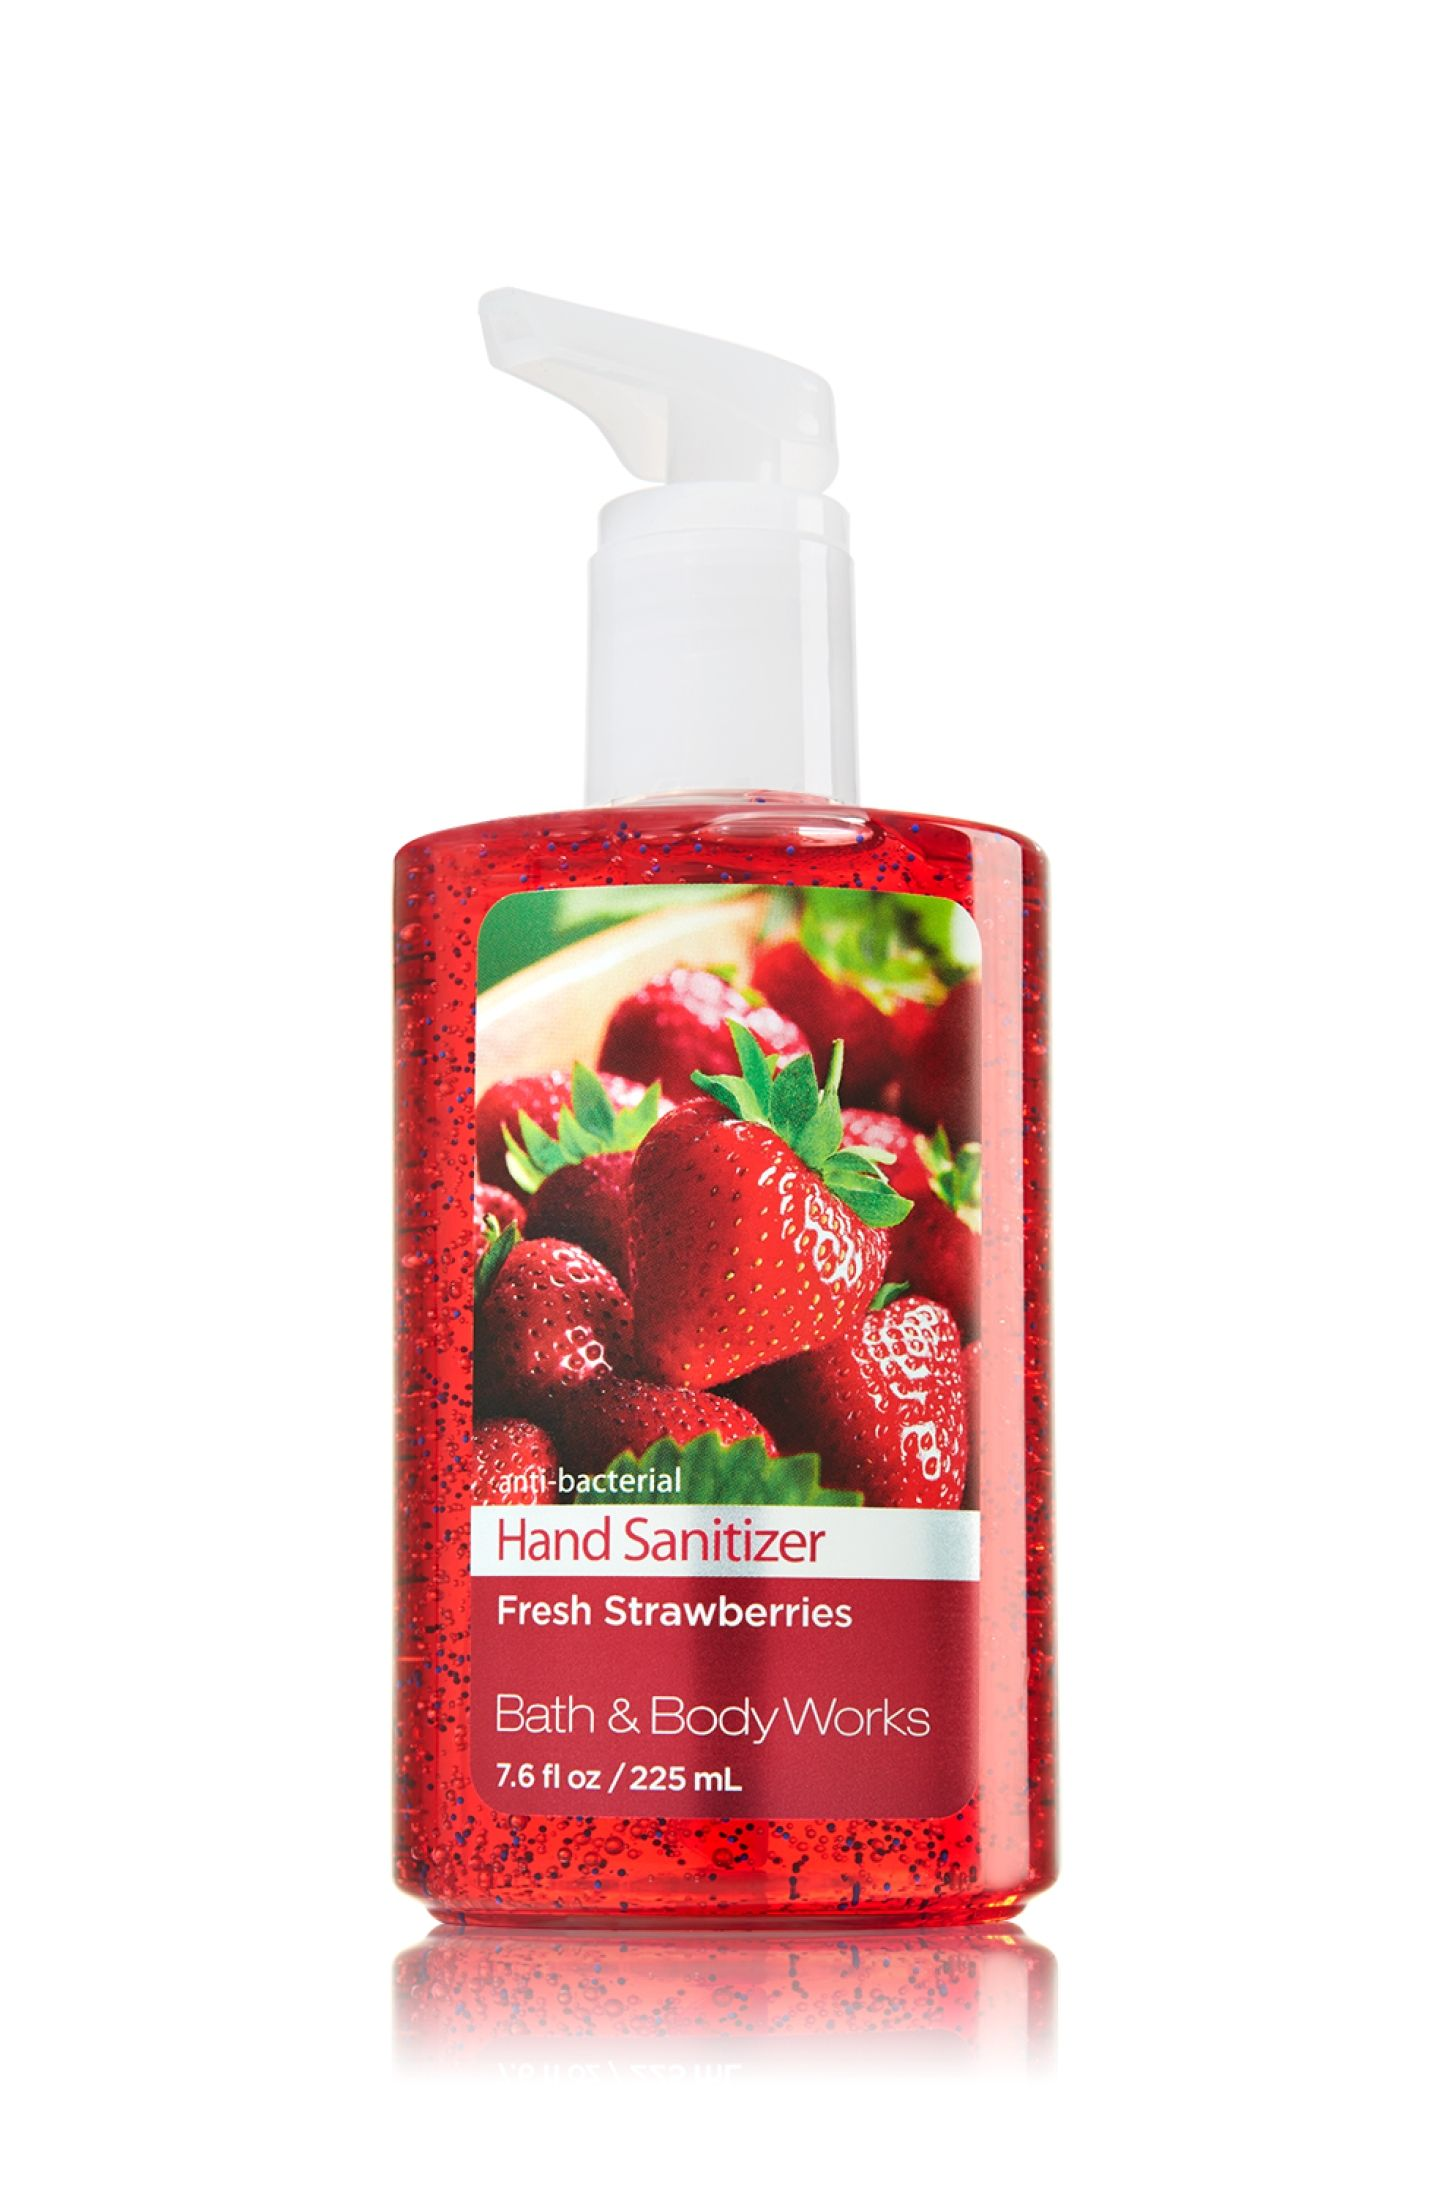 Fresh Strawberries Sanitizing Hand Gel Soap Sanitizer Bath